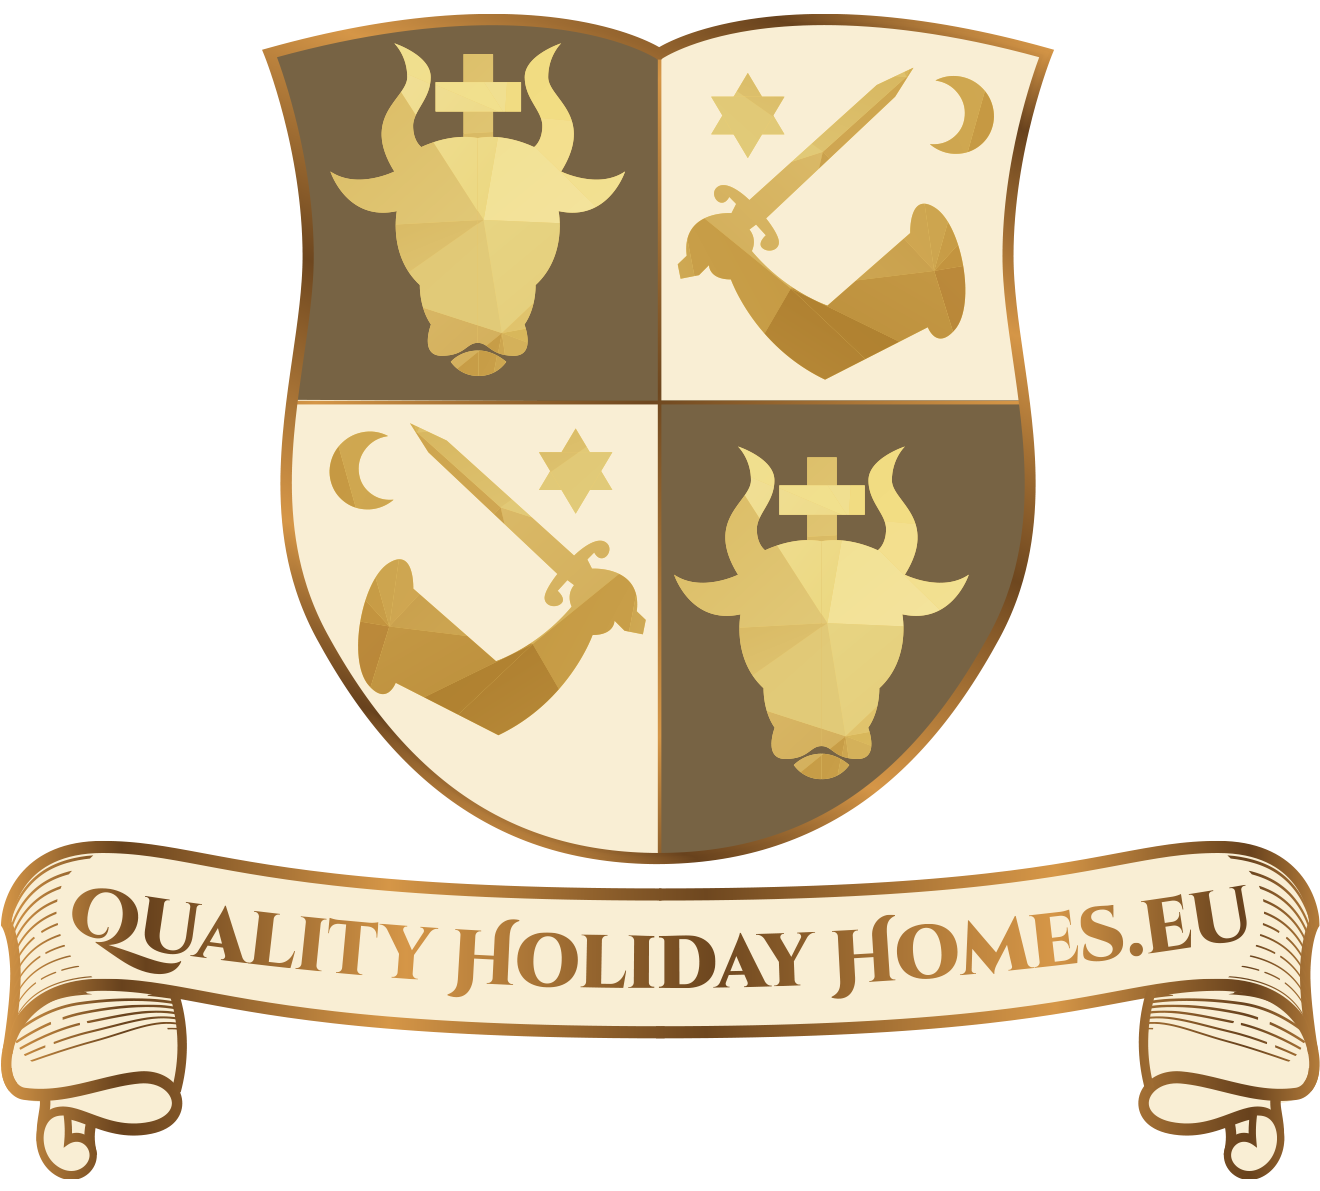 Quality Holiday Homes